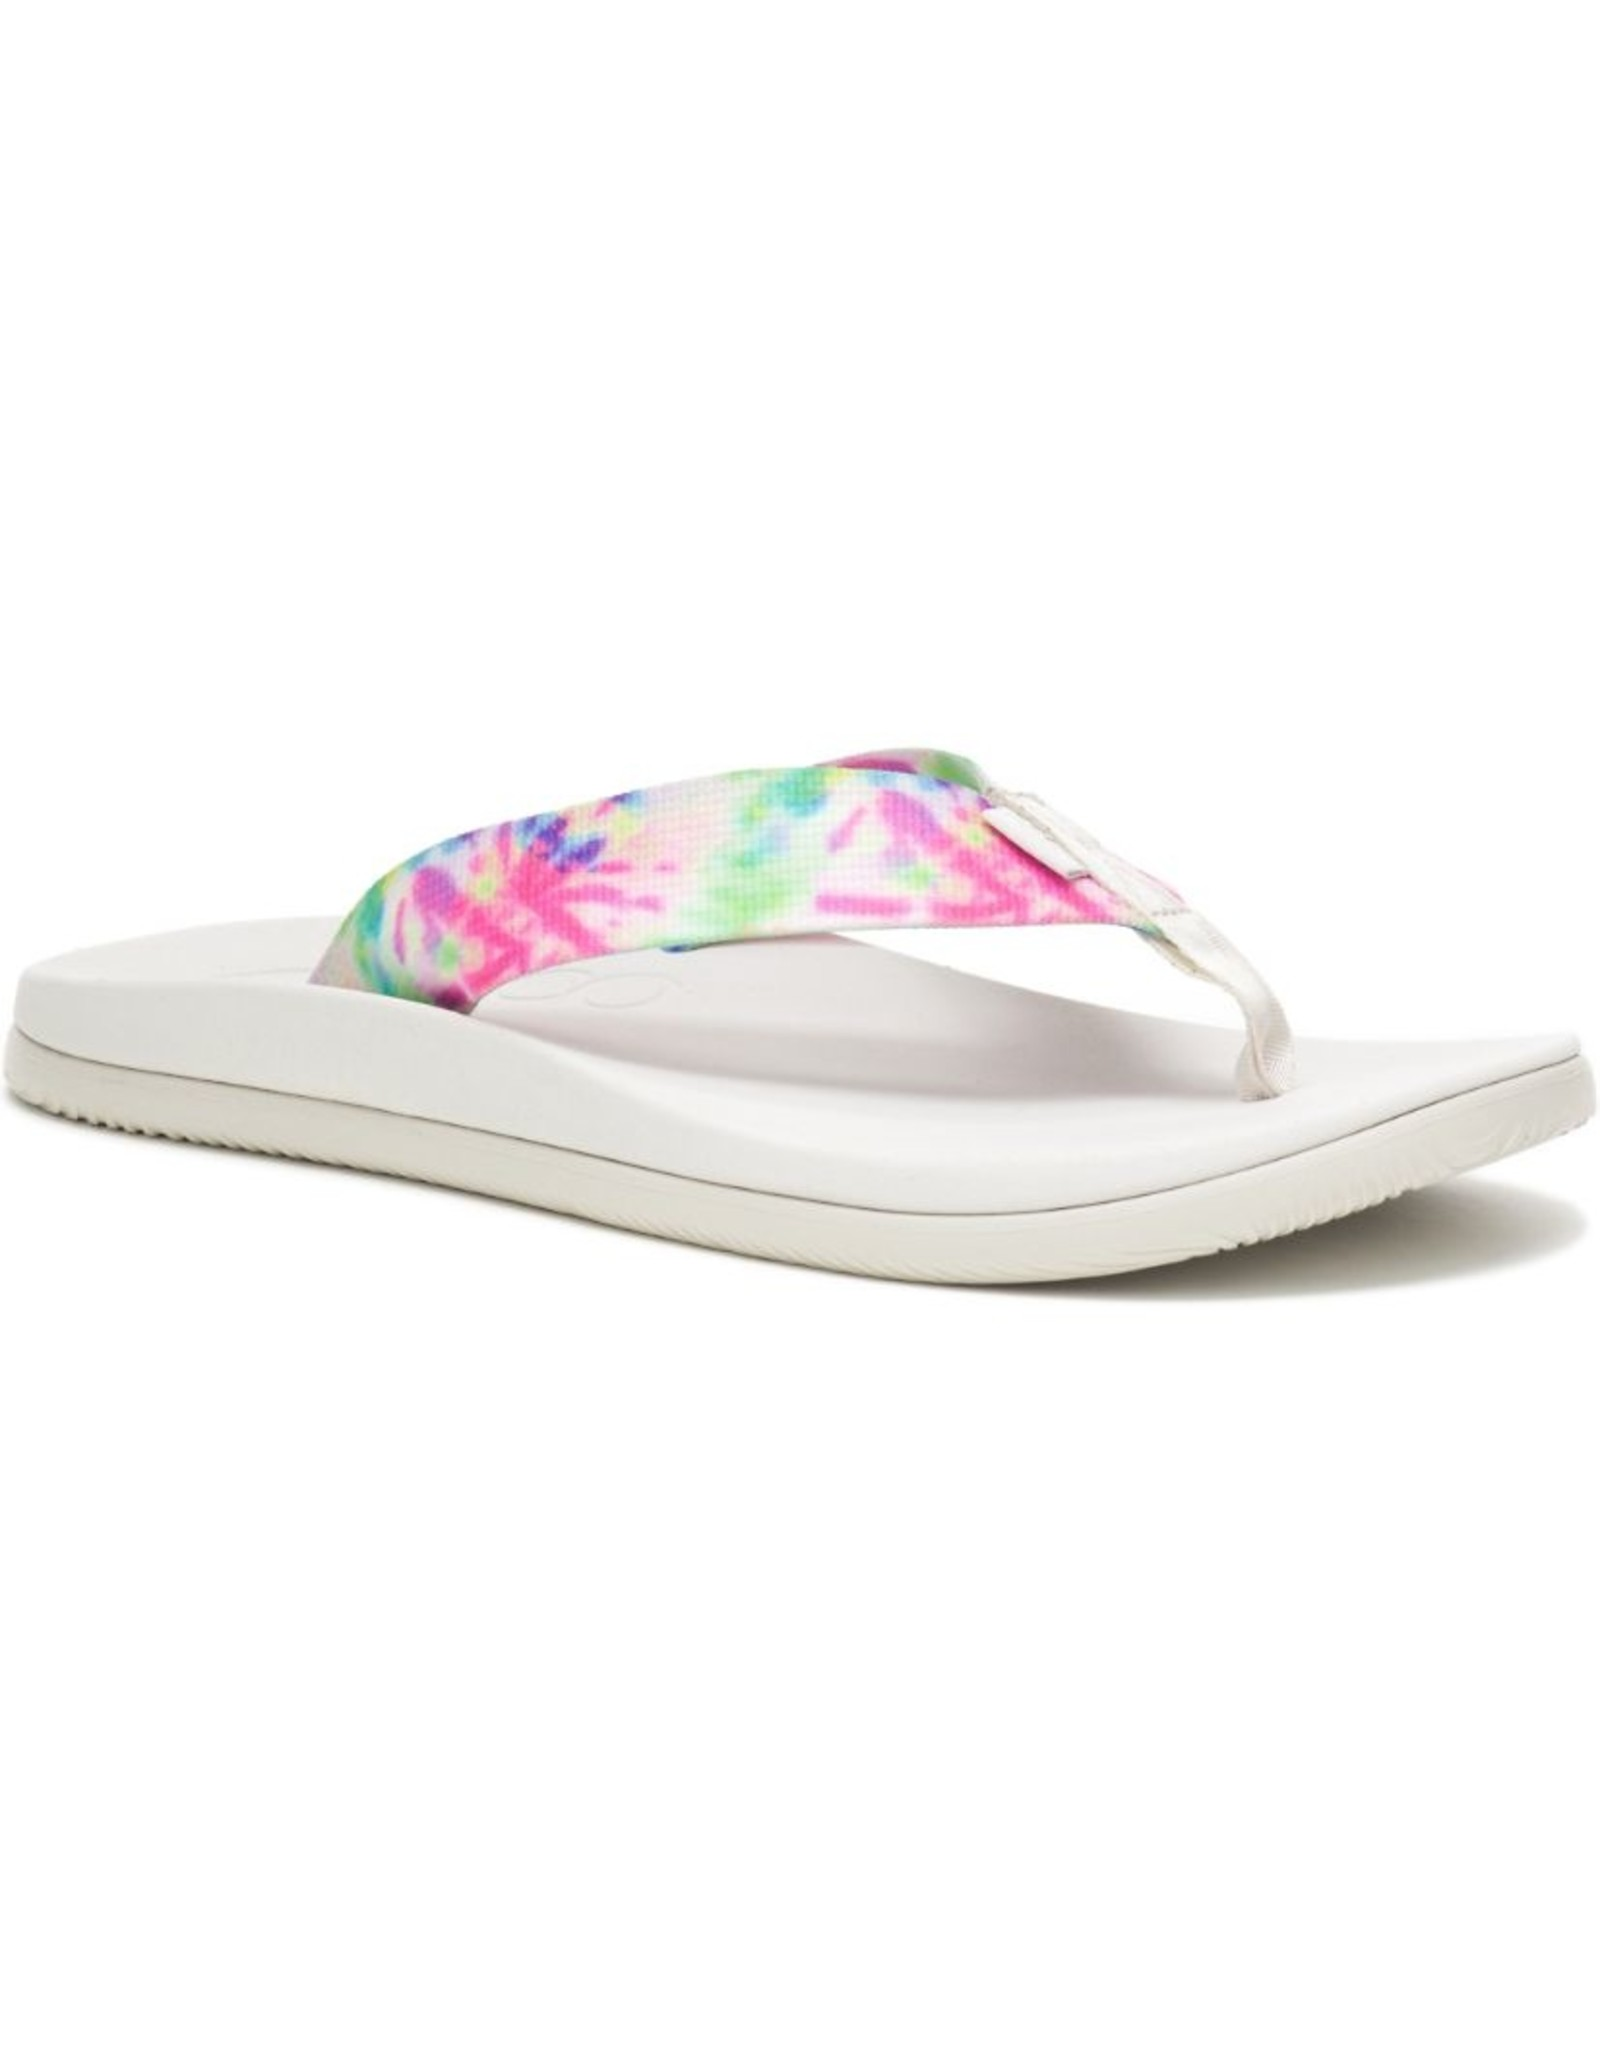 CHACO WOMEN'S CHILLOS FLIP-LIGHT TIE DYE